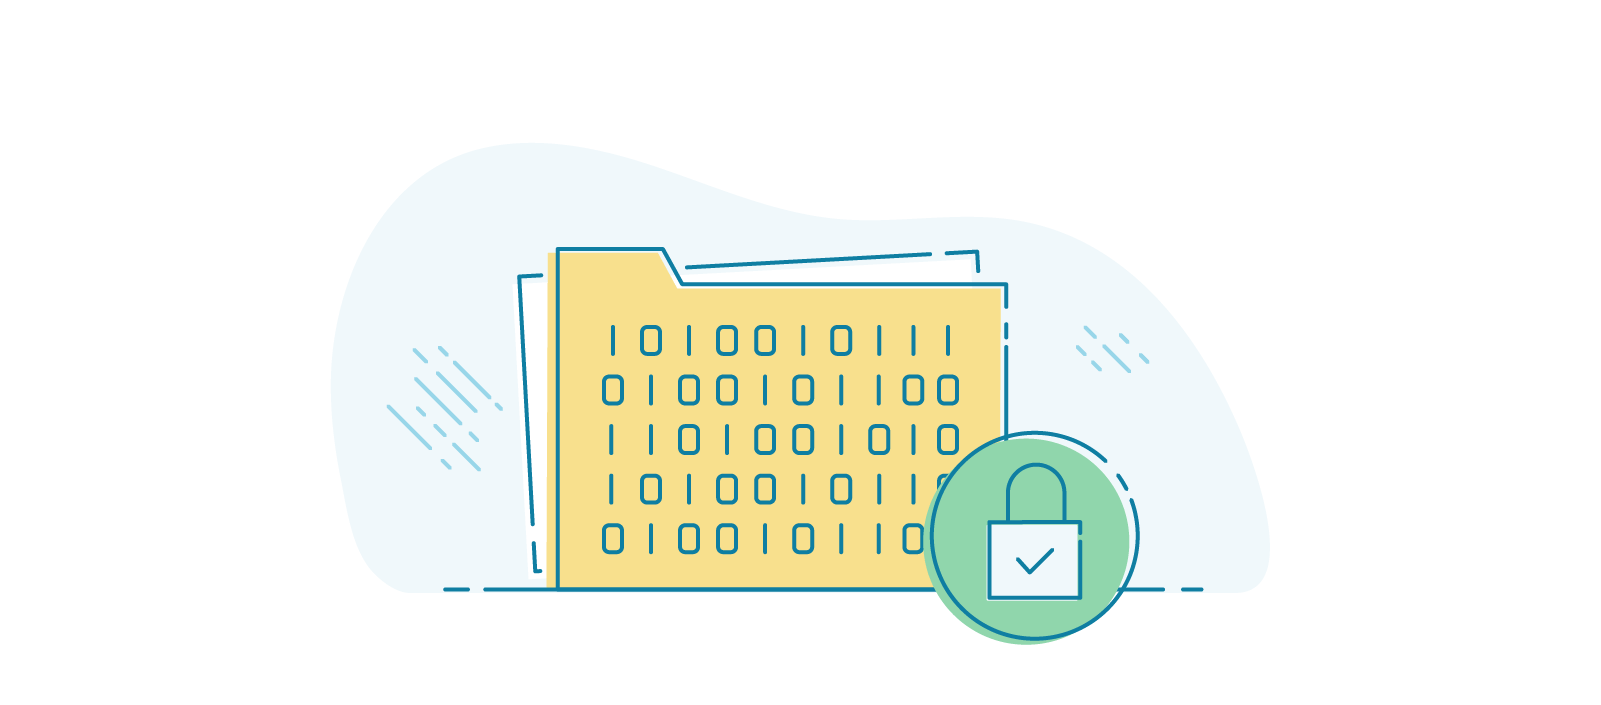 Illustration of a folder covered in 1s and 0s to indicate encrypted data within.